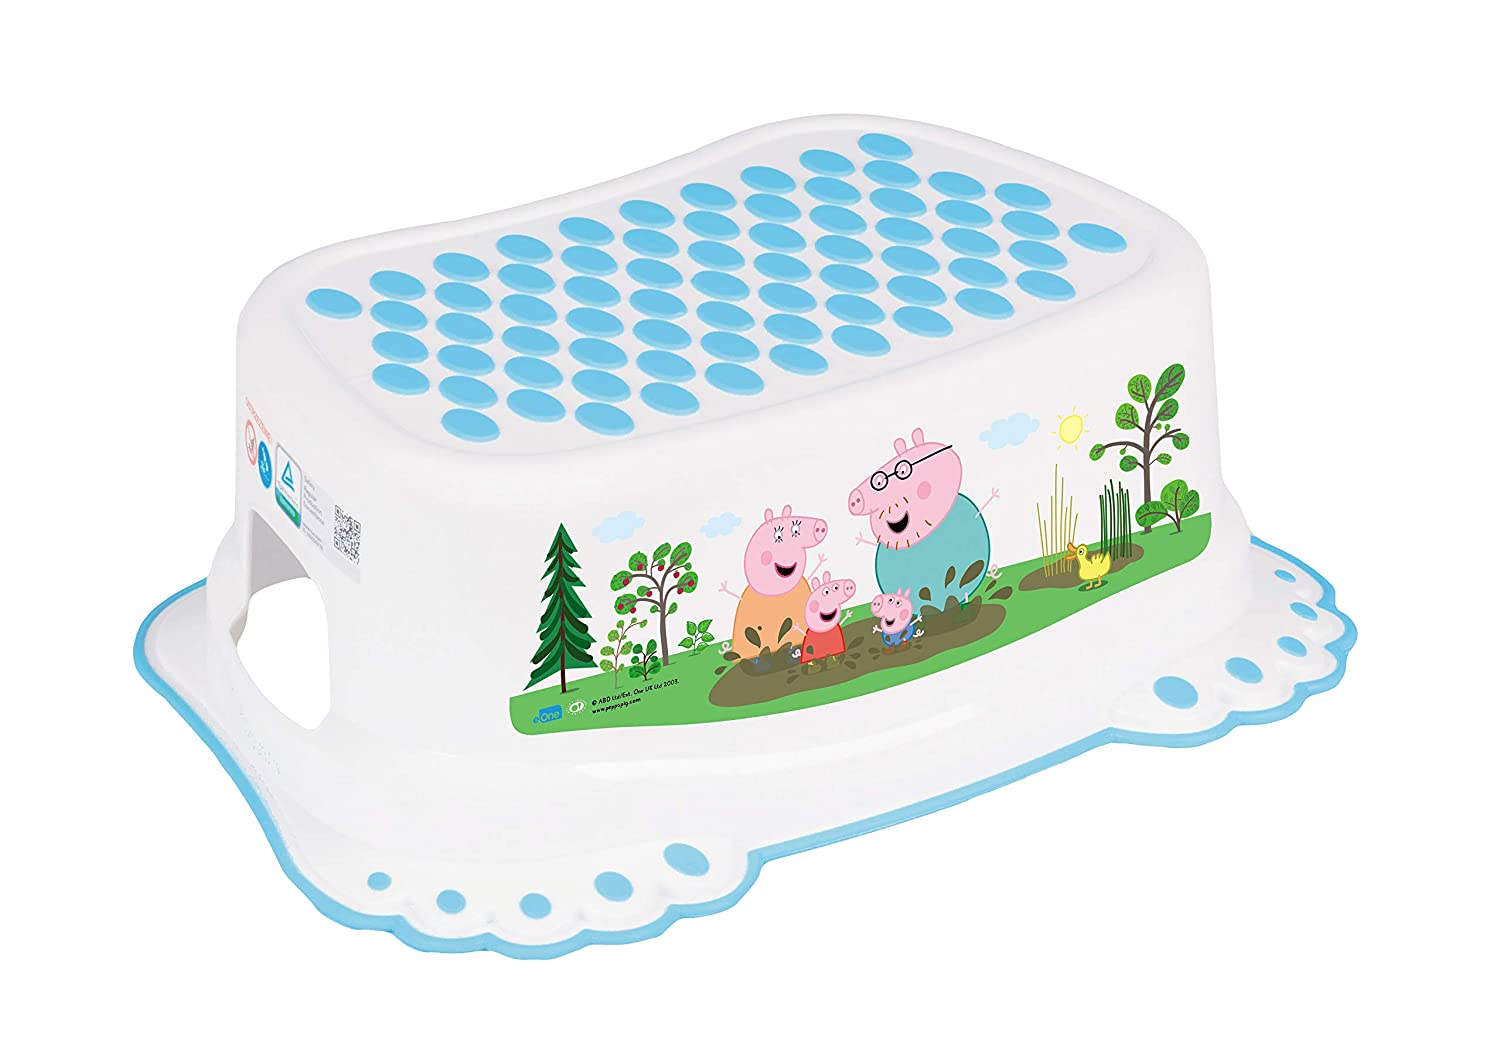 STEP STOOL SAFE NON-SLIP BABY KIDS TOILET TRAINING TODDLERS POTTY Eco Pink